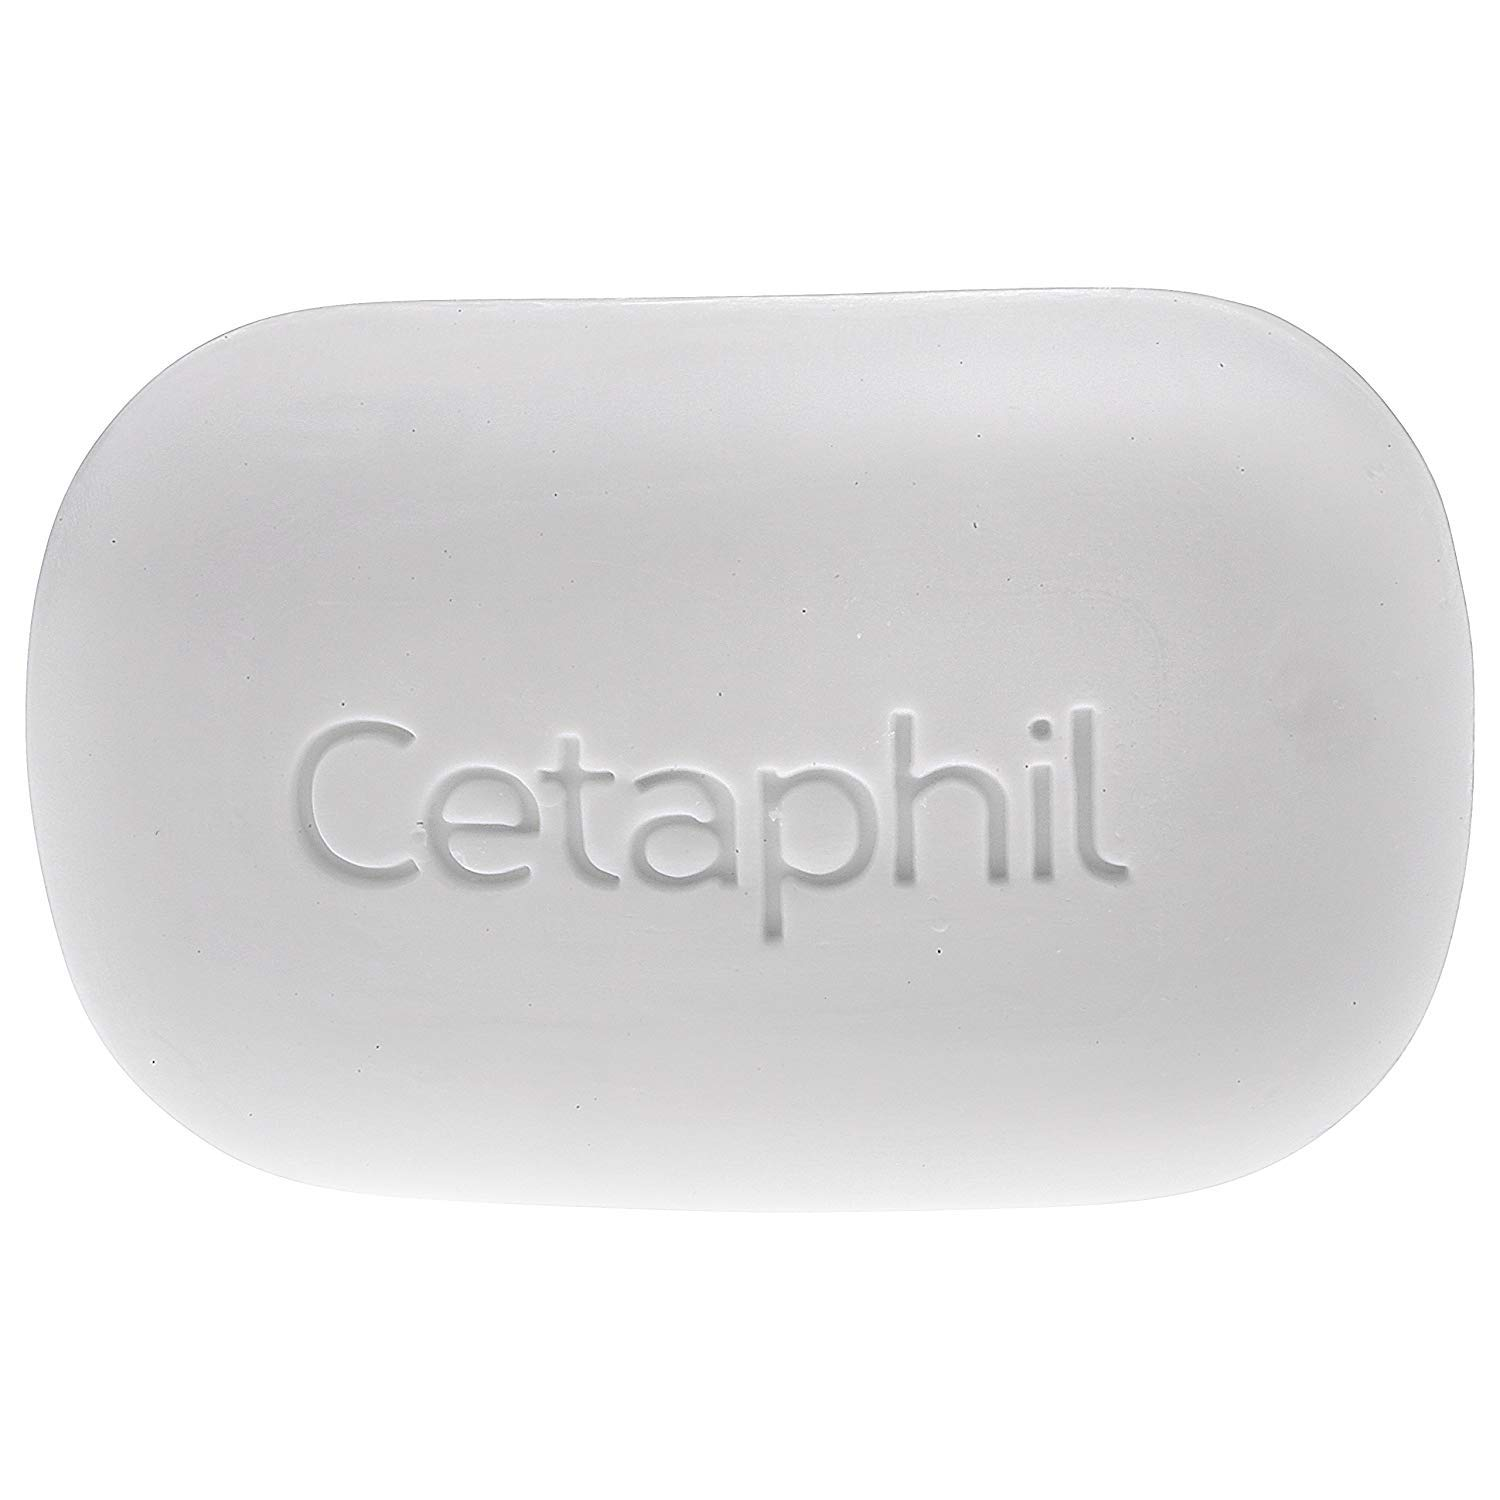 Cetaphil Deep Cleansing Face & Body Bar for All Skin Types (Pack of 11) (Pack of 11) by Cetaphil (Image #3)